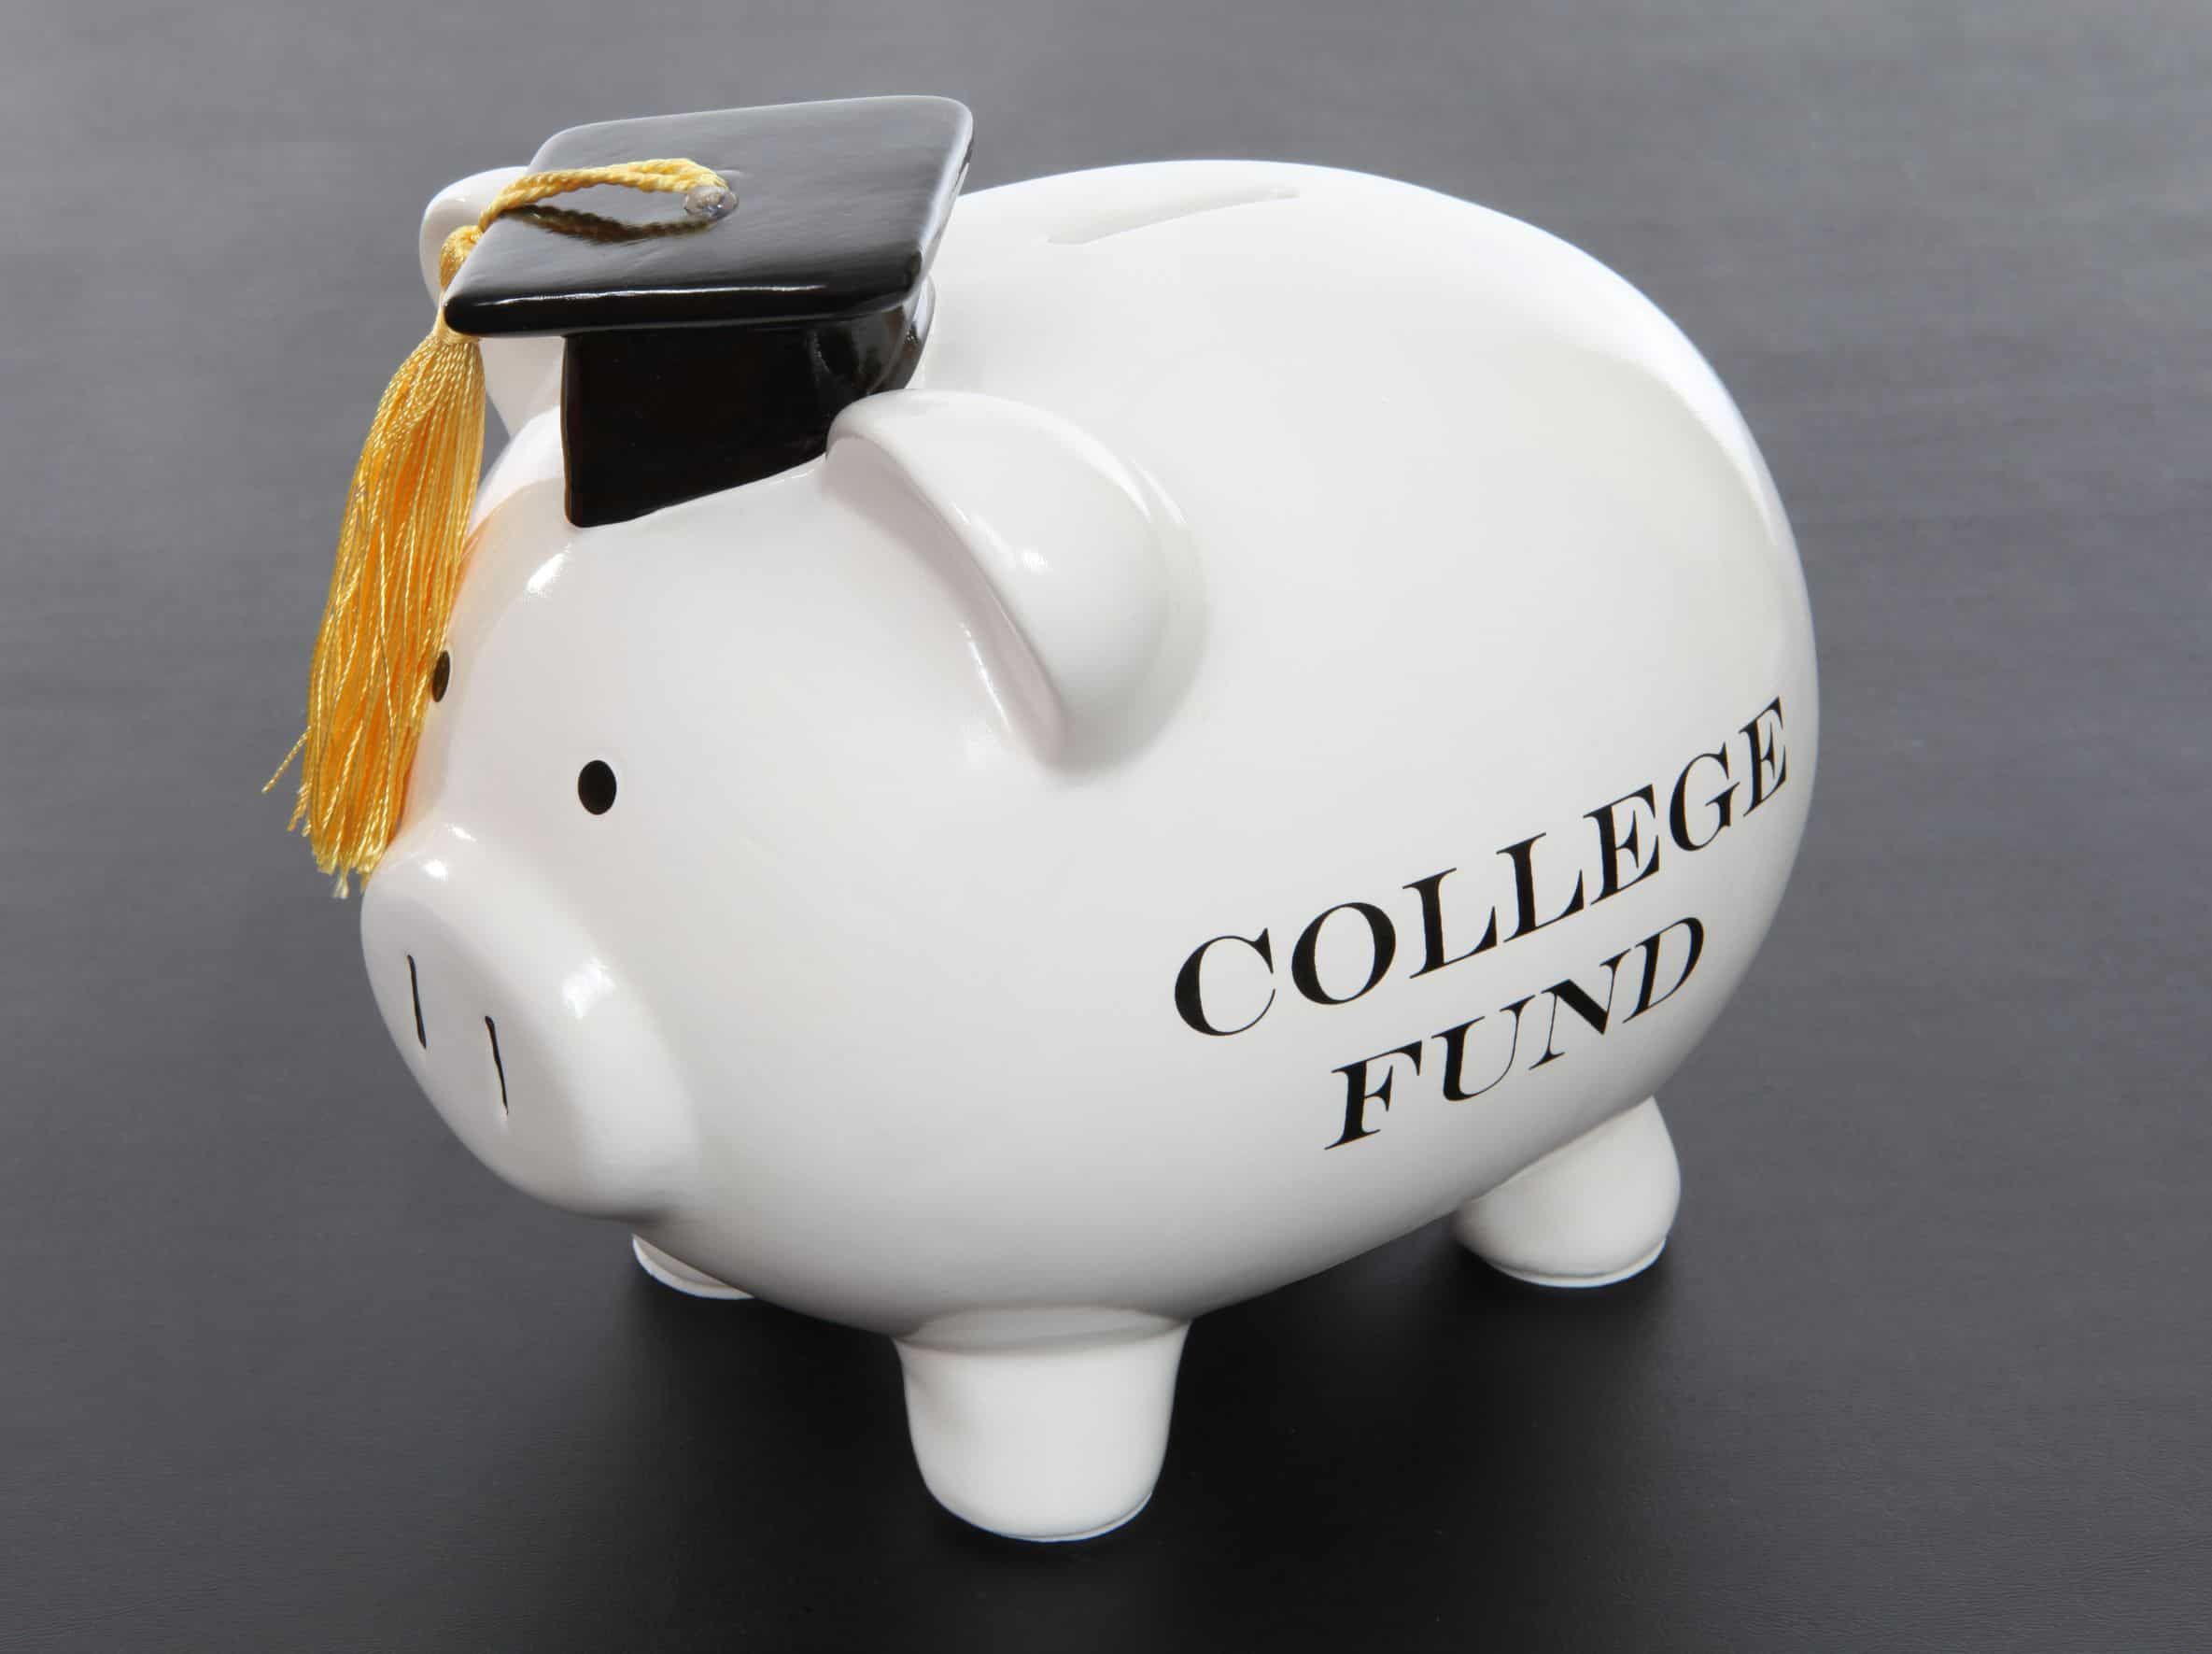 Save on the cost of college